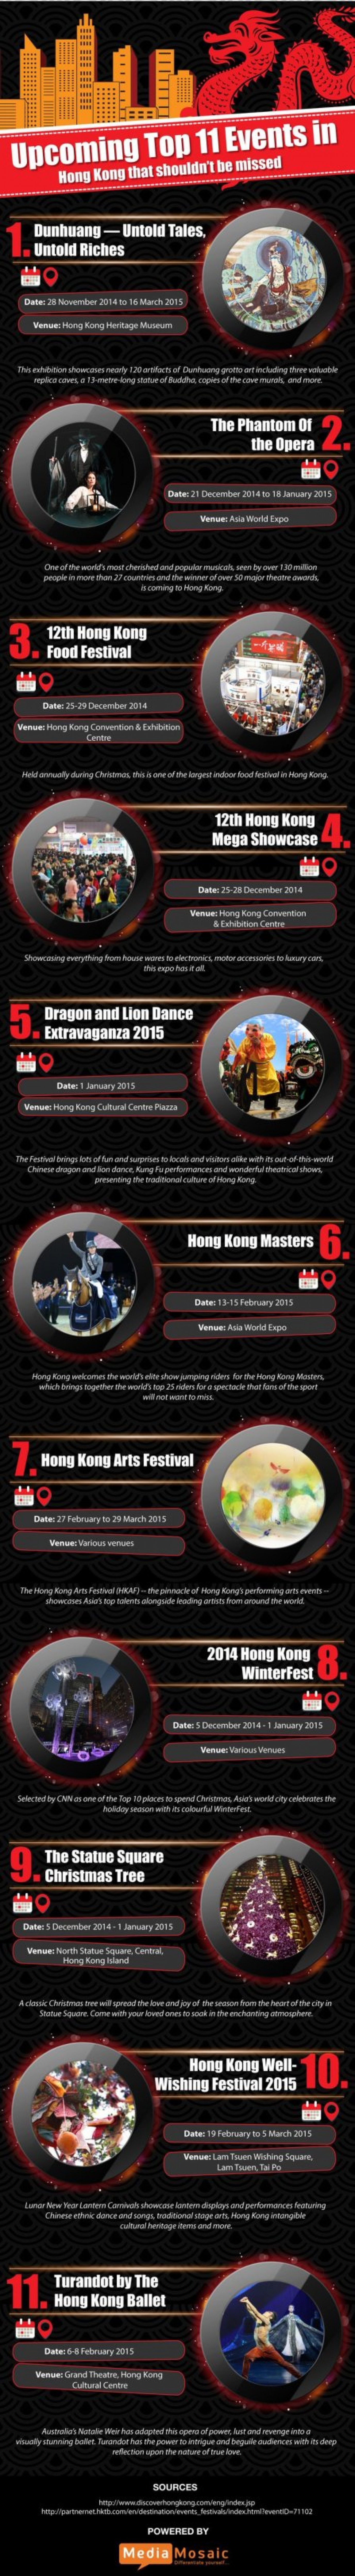 Upcoming Top 11 Events in Hong Kong that shouldn't be Missed Infographic